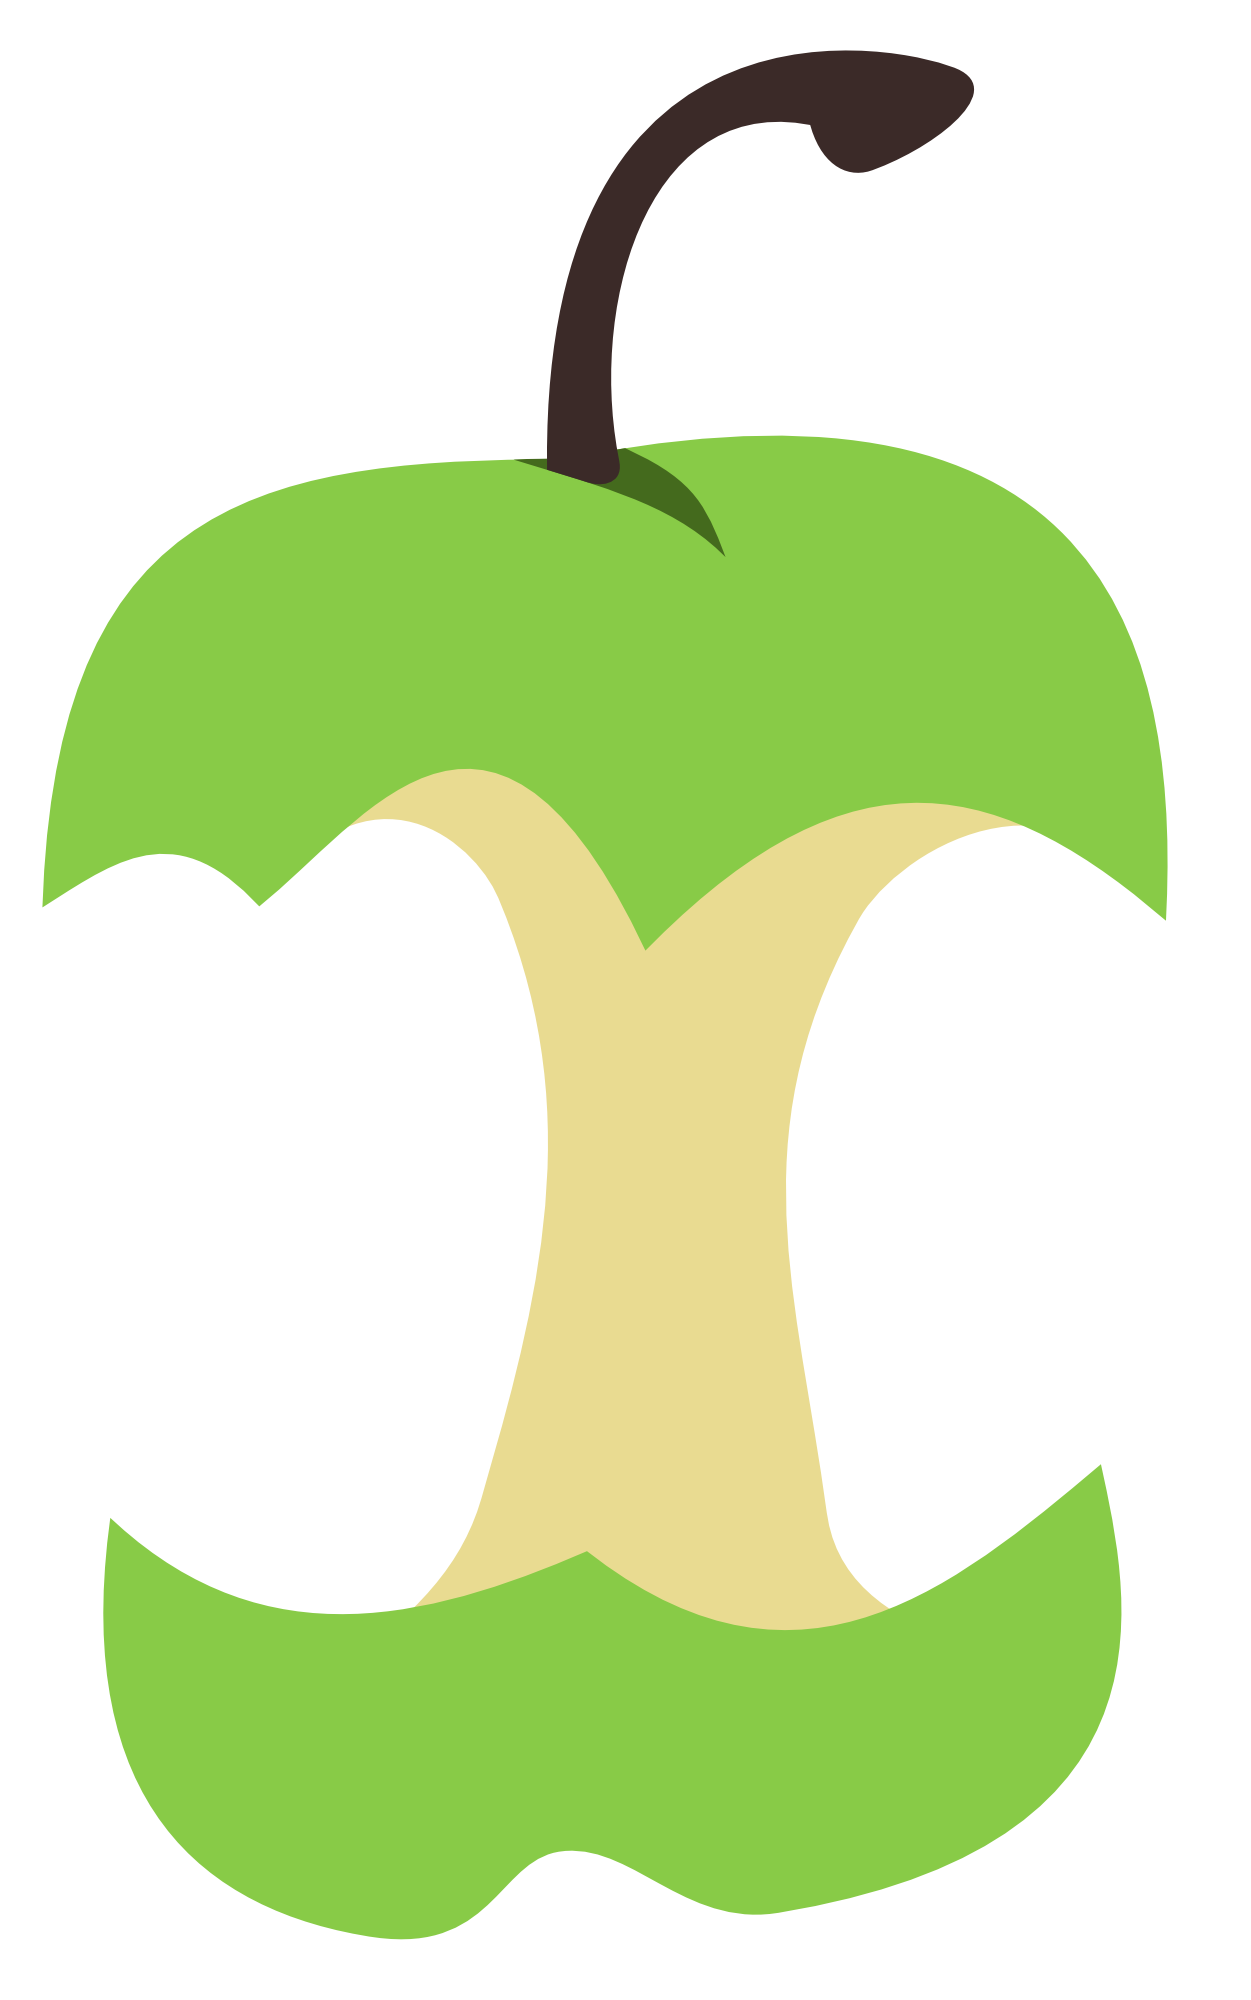 Free apple core clipart images.